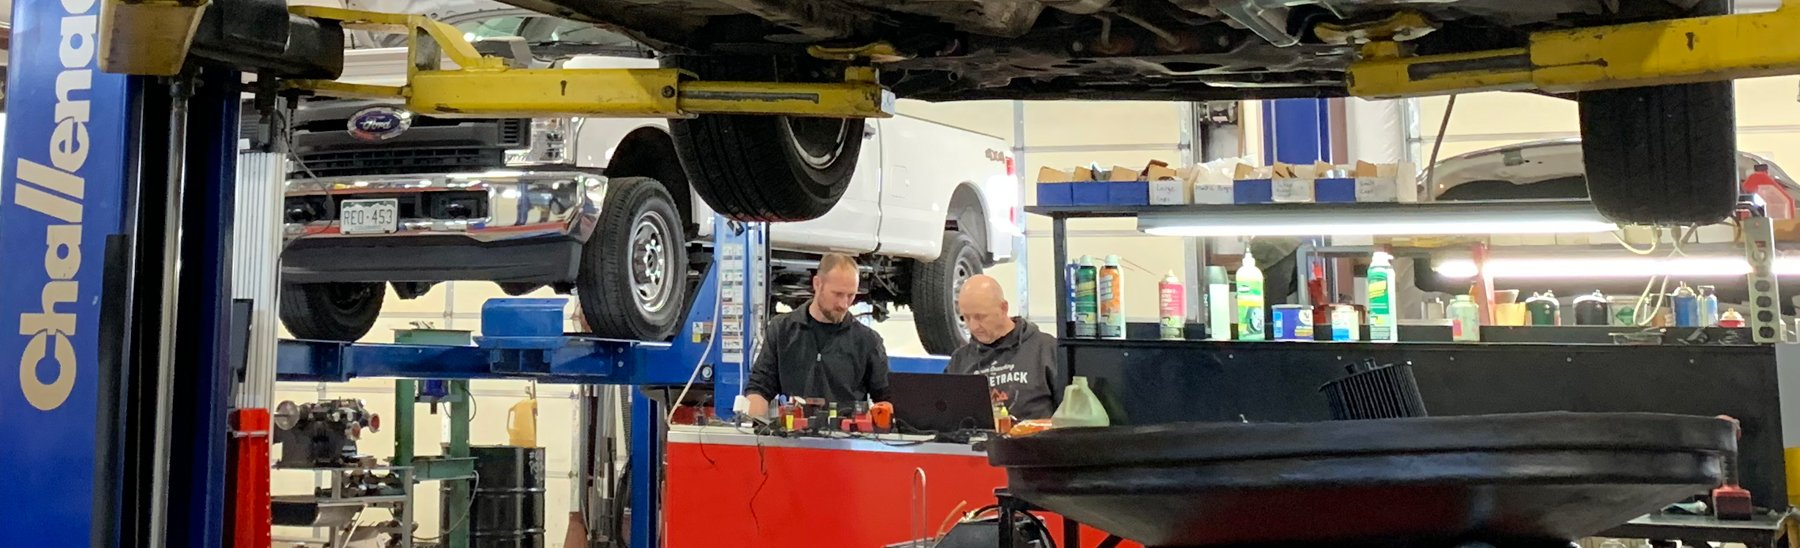 colchin-auto-repair-service-arvada-reviews